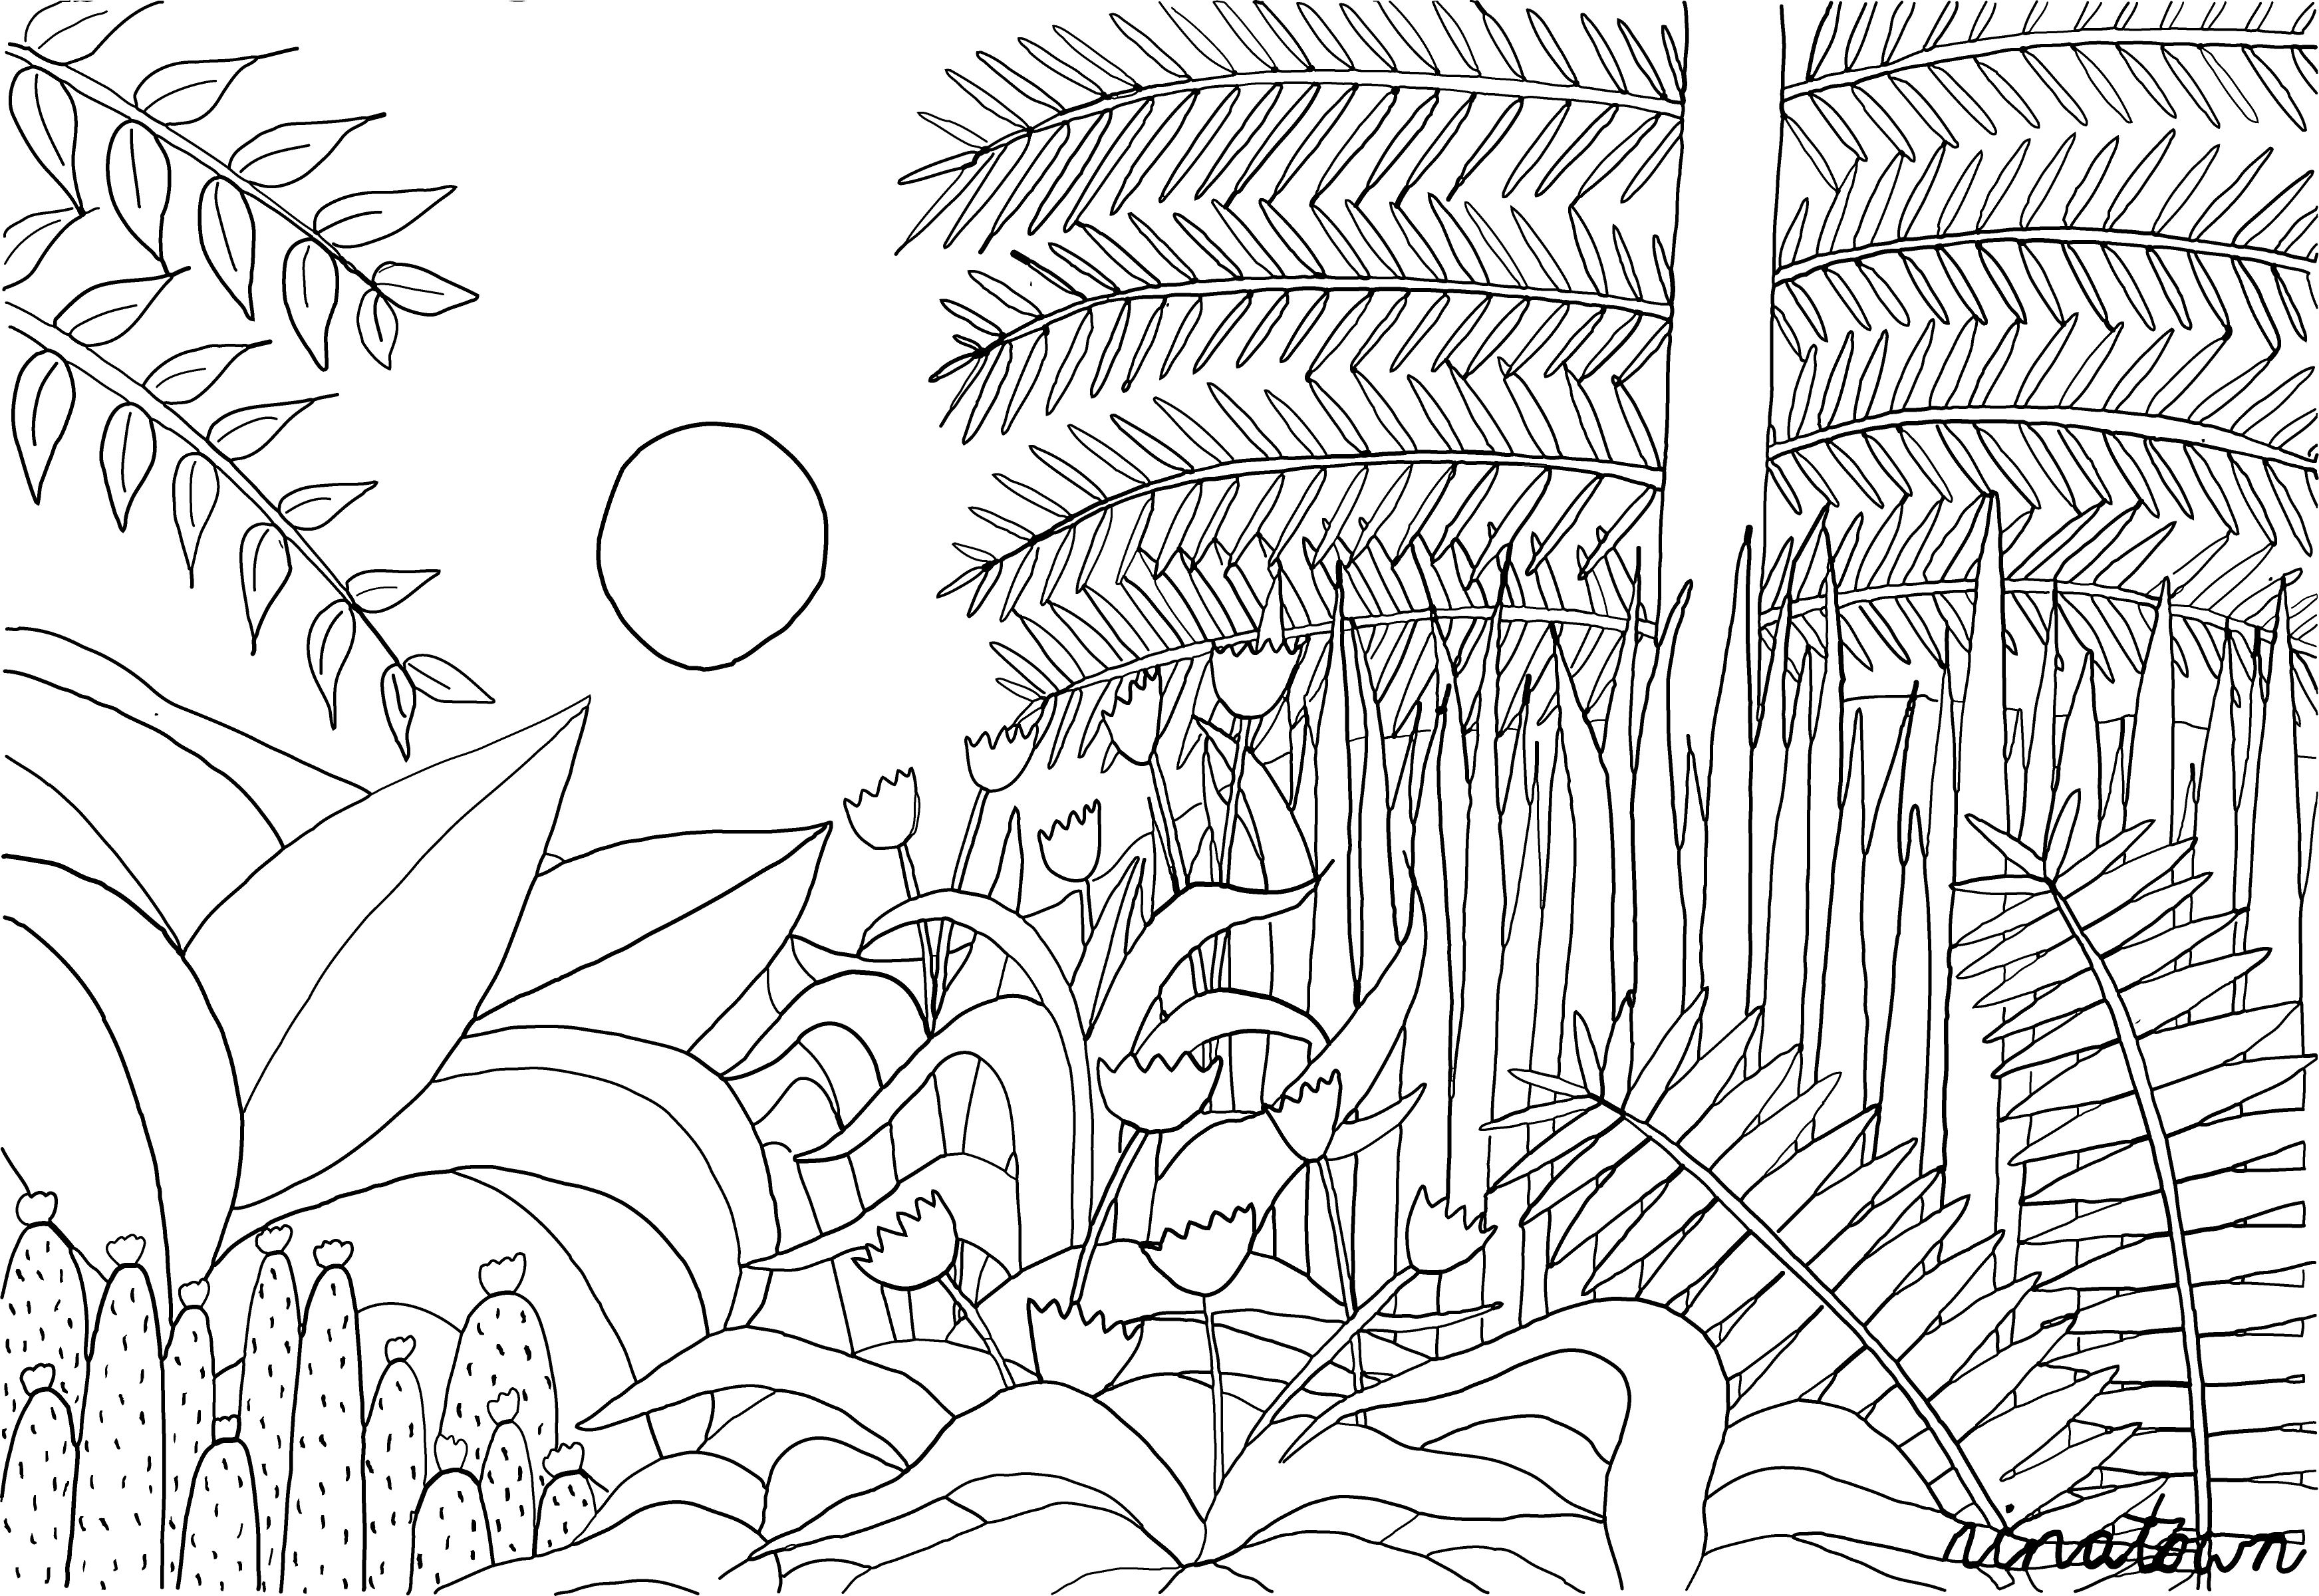 henri rousseau coloring pages the repast of the lion 1907 by henri julien rousseau pages coloring rousseau henri